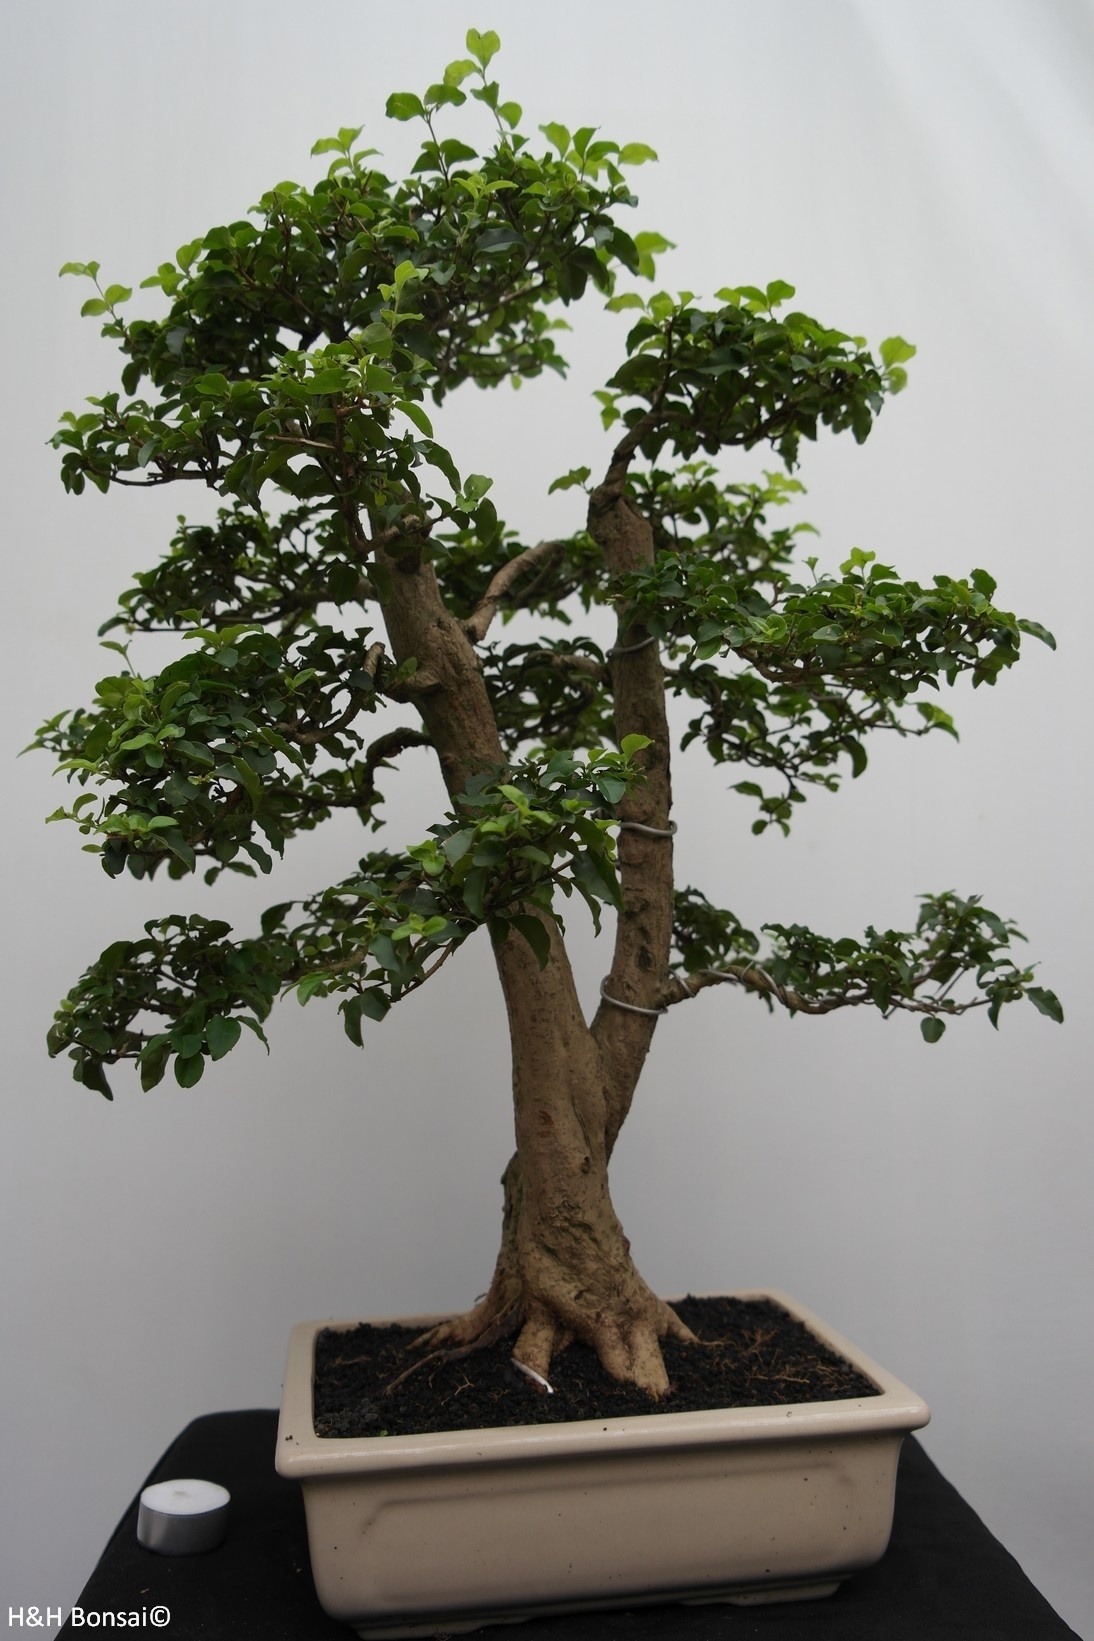 Bonsai Privet, Ligustrum sinense, no. 7827